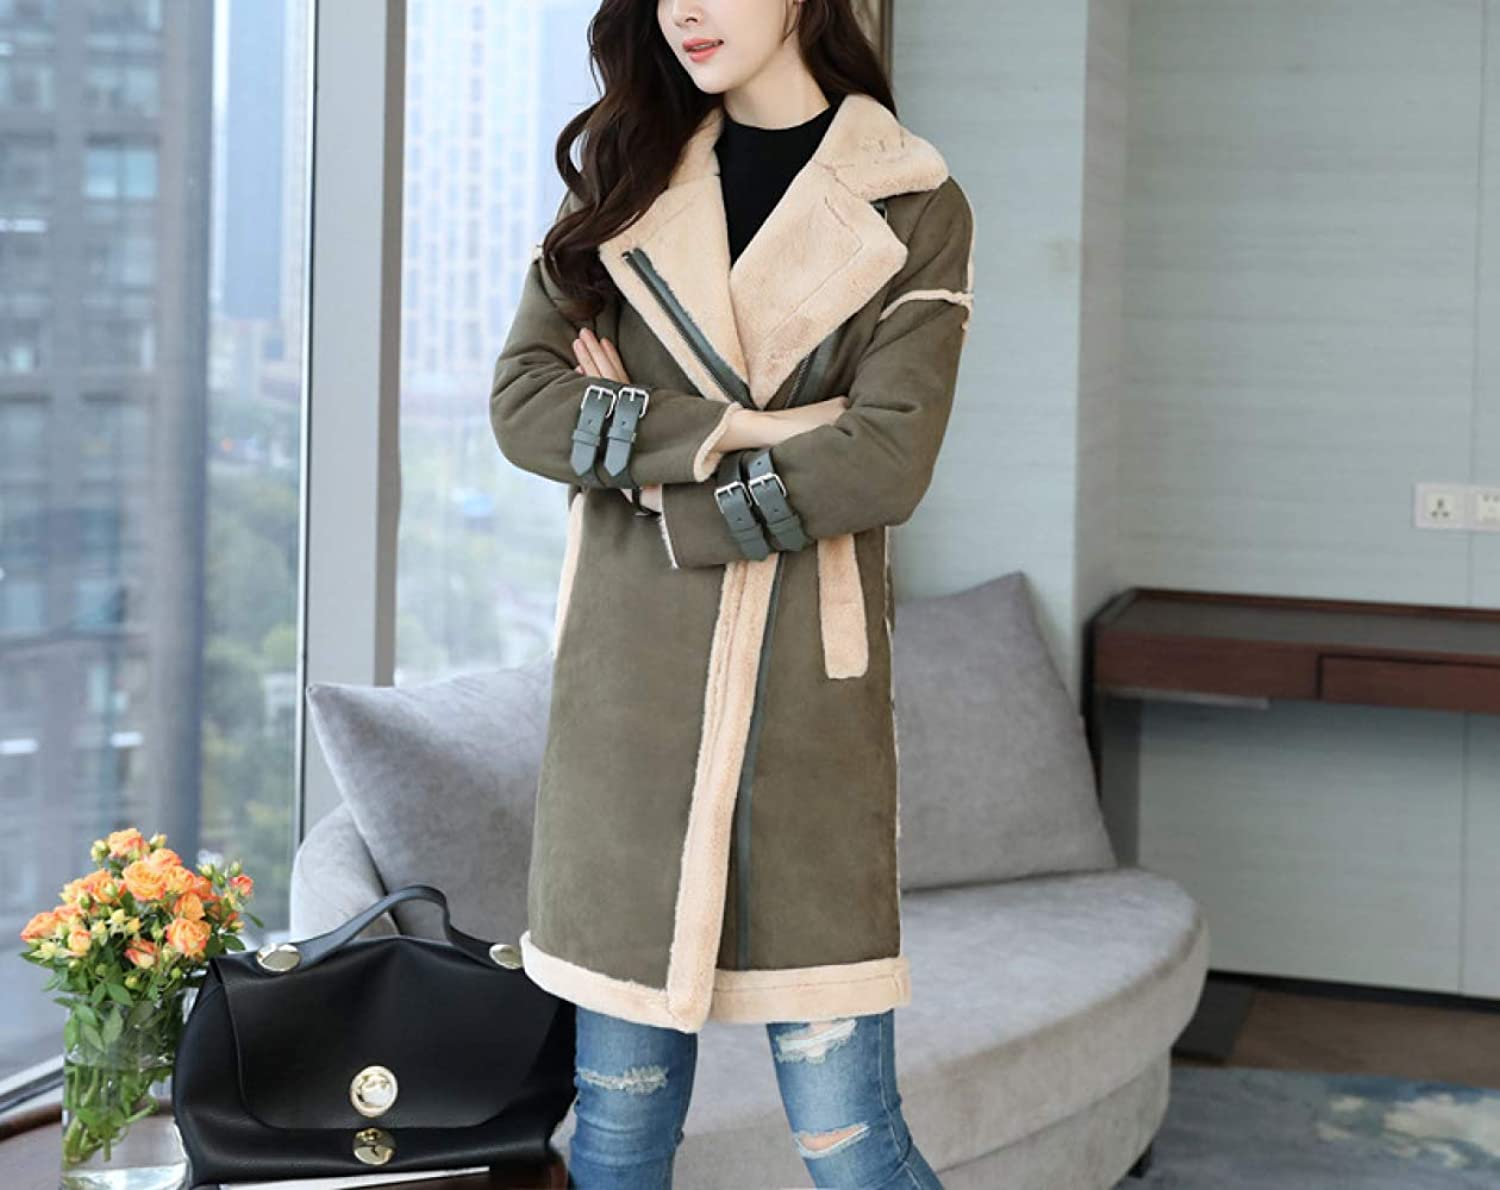 Autumn and Winter Woolen Coat, Women's Warm Cotton Jacket, Women's New Winter Fashion Fur, Long Section Plus Velvet Coat, Ladies Autumn and Winter Coat XQY